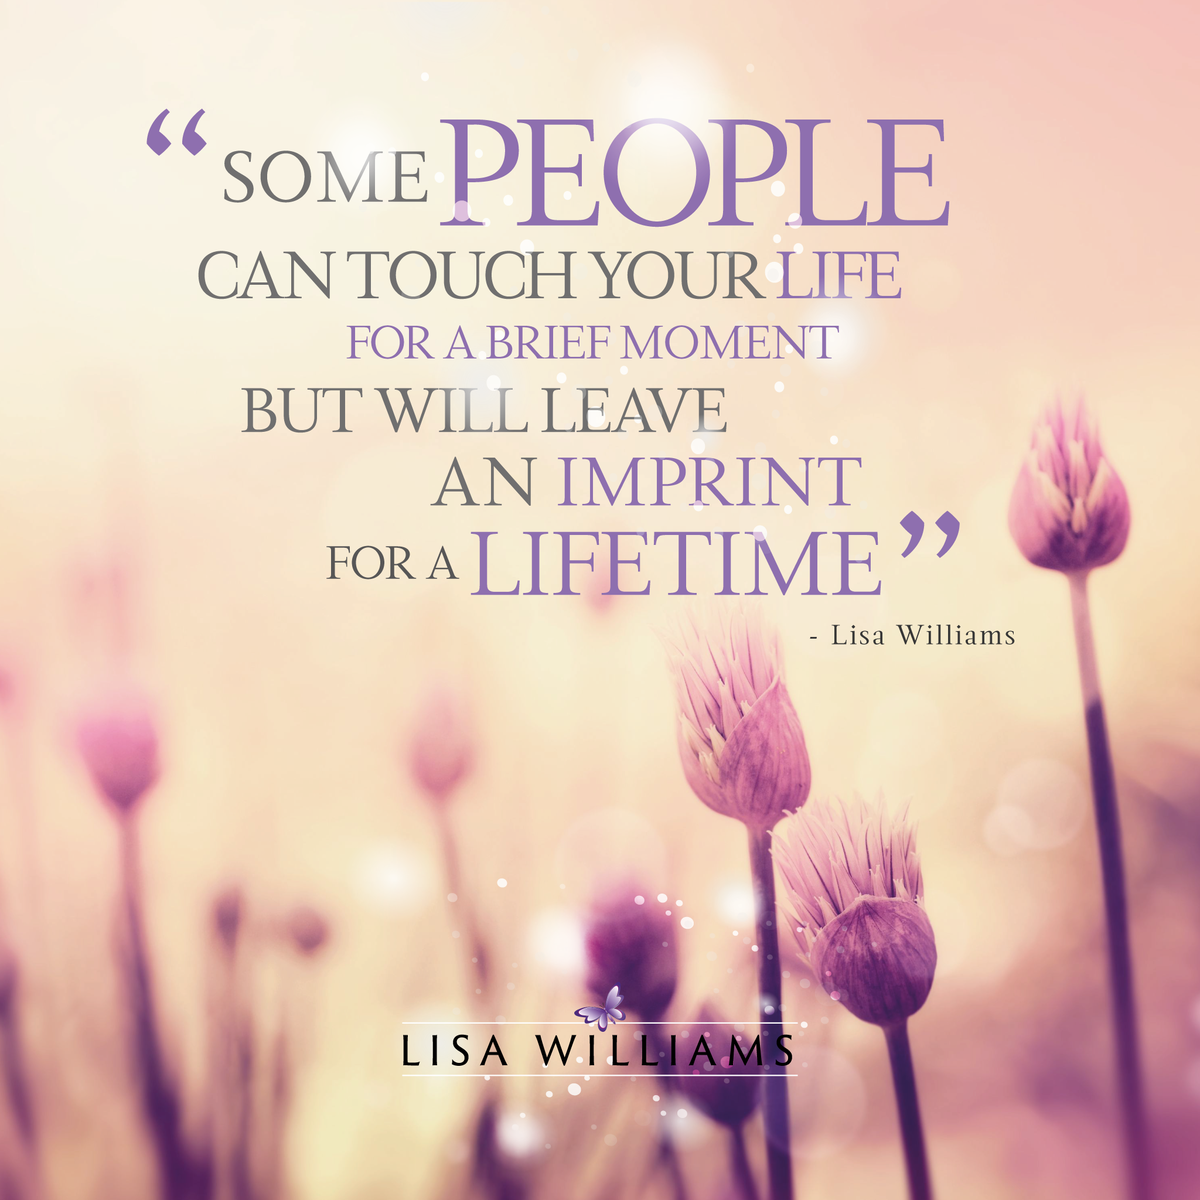 Imprint for a Life time http://t.co/GlGgtEMiUR